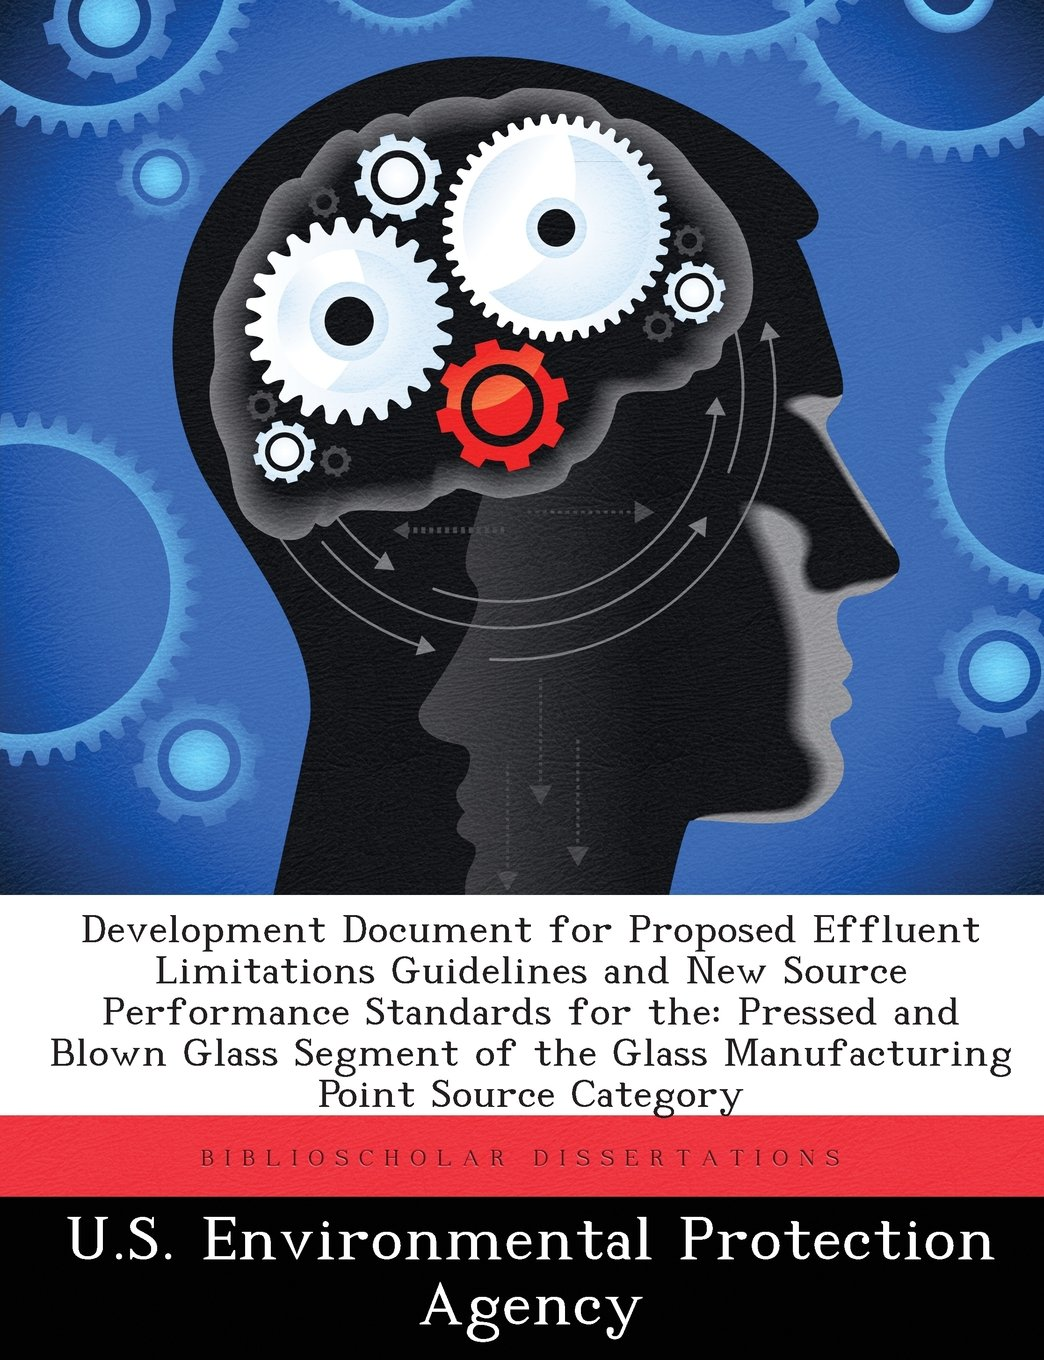 Development Document for Proposed Effluent Limitations Guidelines and New Source Performance Standards for the: Pressed and Blown Glass Segment of the pdf